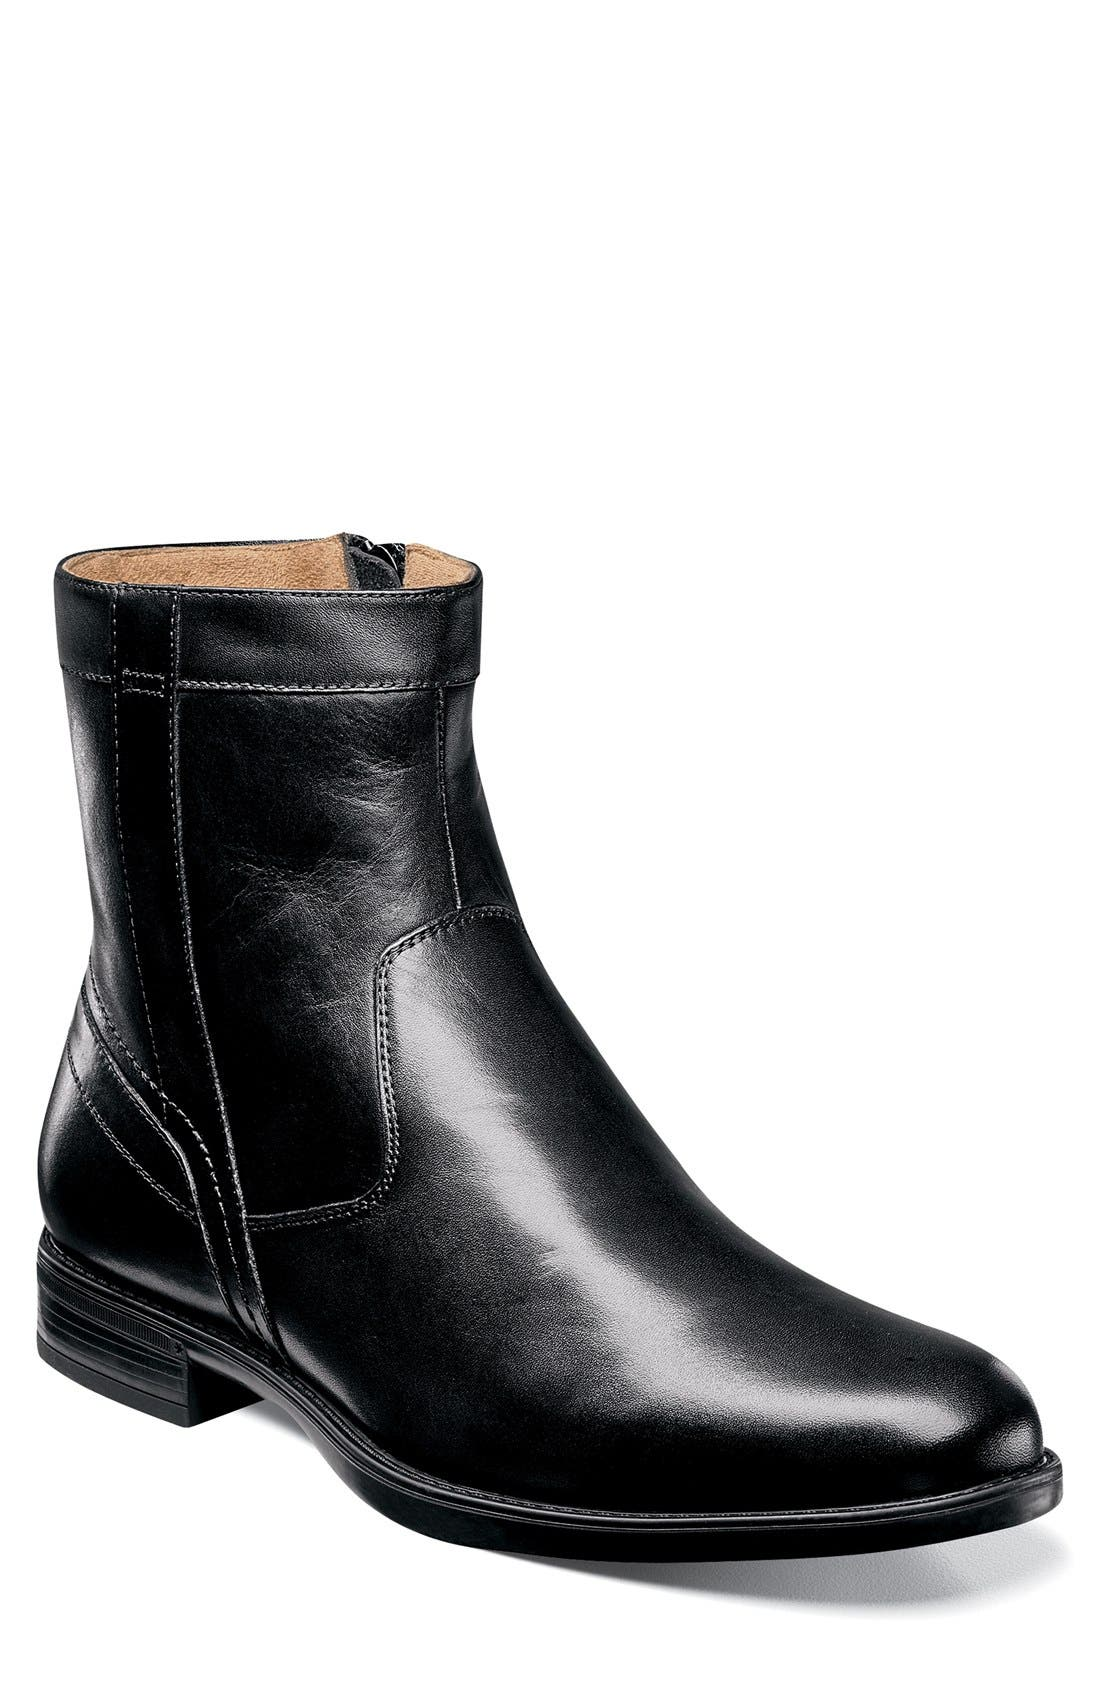 FLORSHEIM, 'Midtown' Zip Boot, Main thumbnail 1, color, BLACK LEATHER